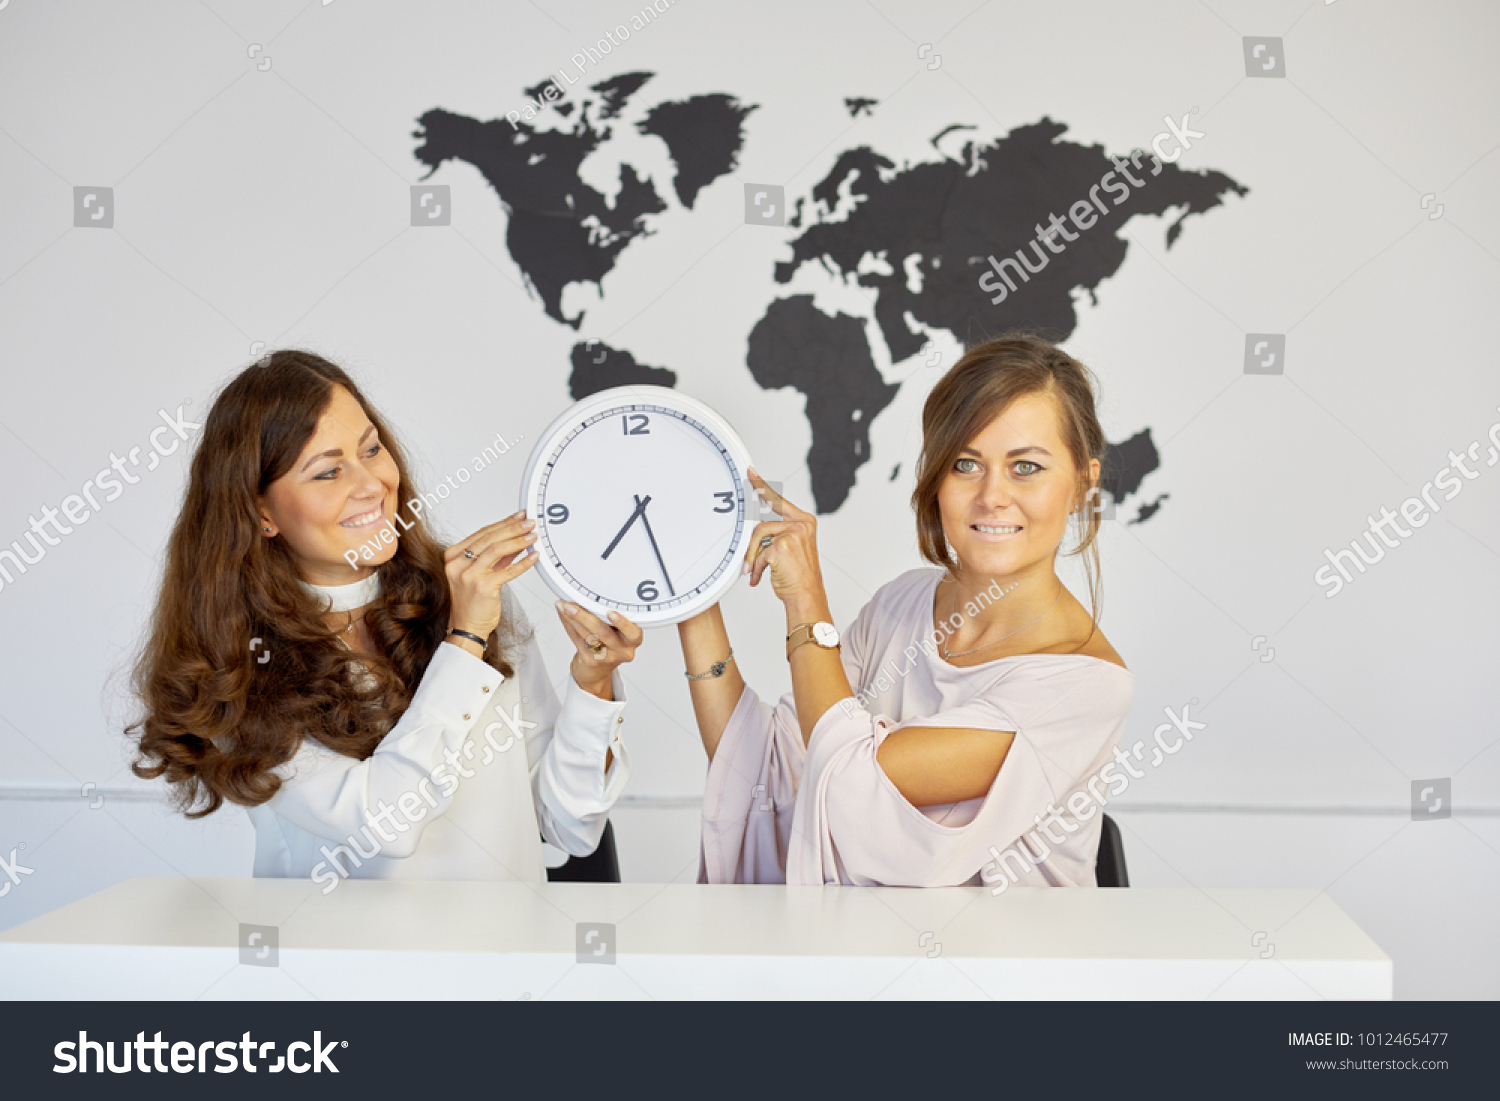 Two smiling women sit desk holding stock photo royalty free two smiling women sit at desk holding wall clock against world map gumiabroncs Image collections